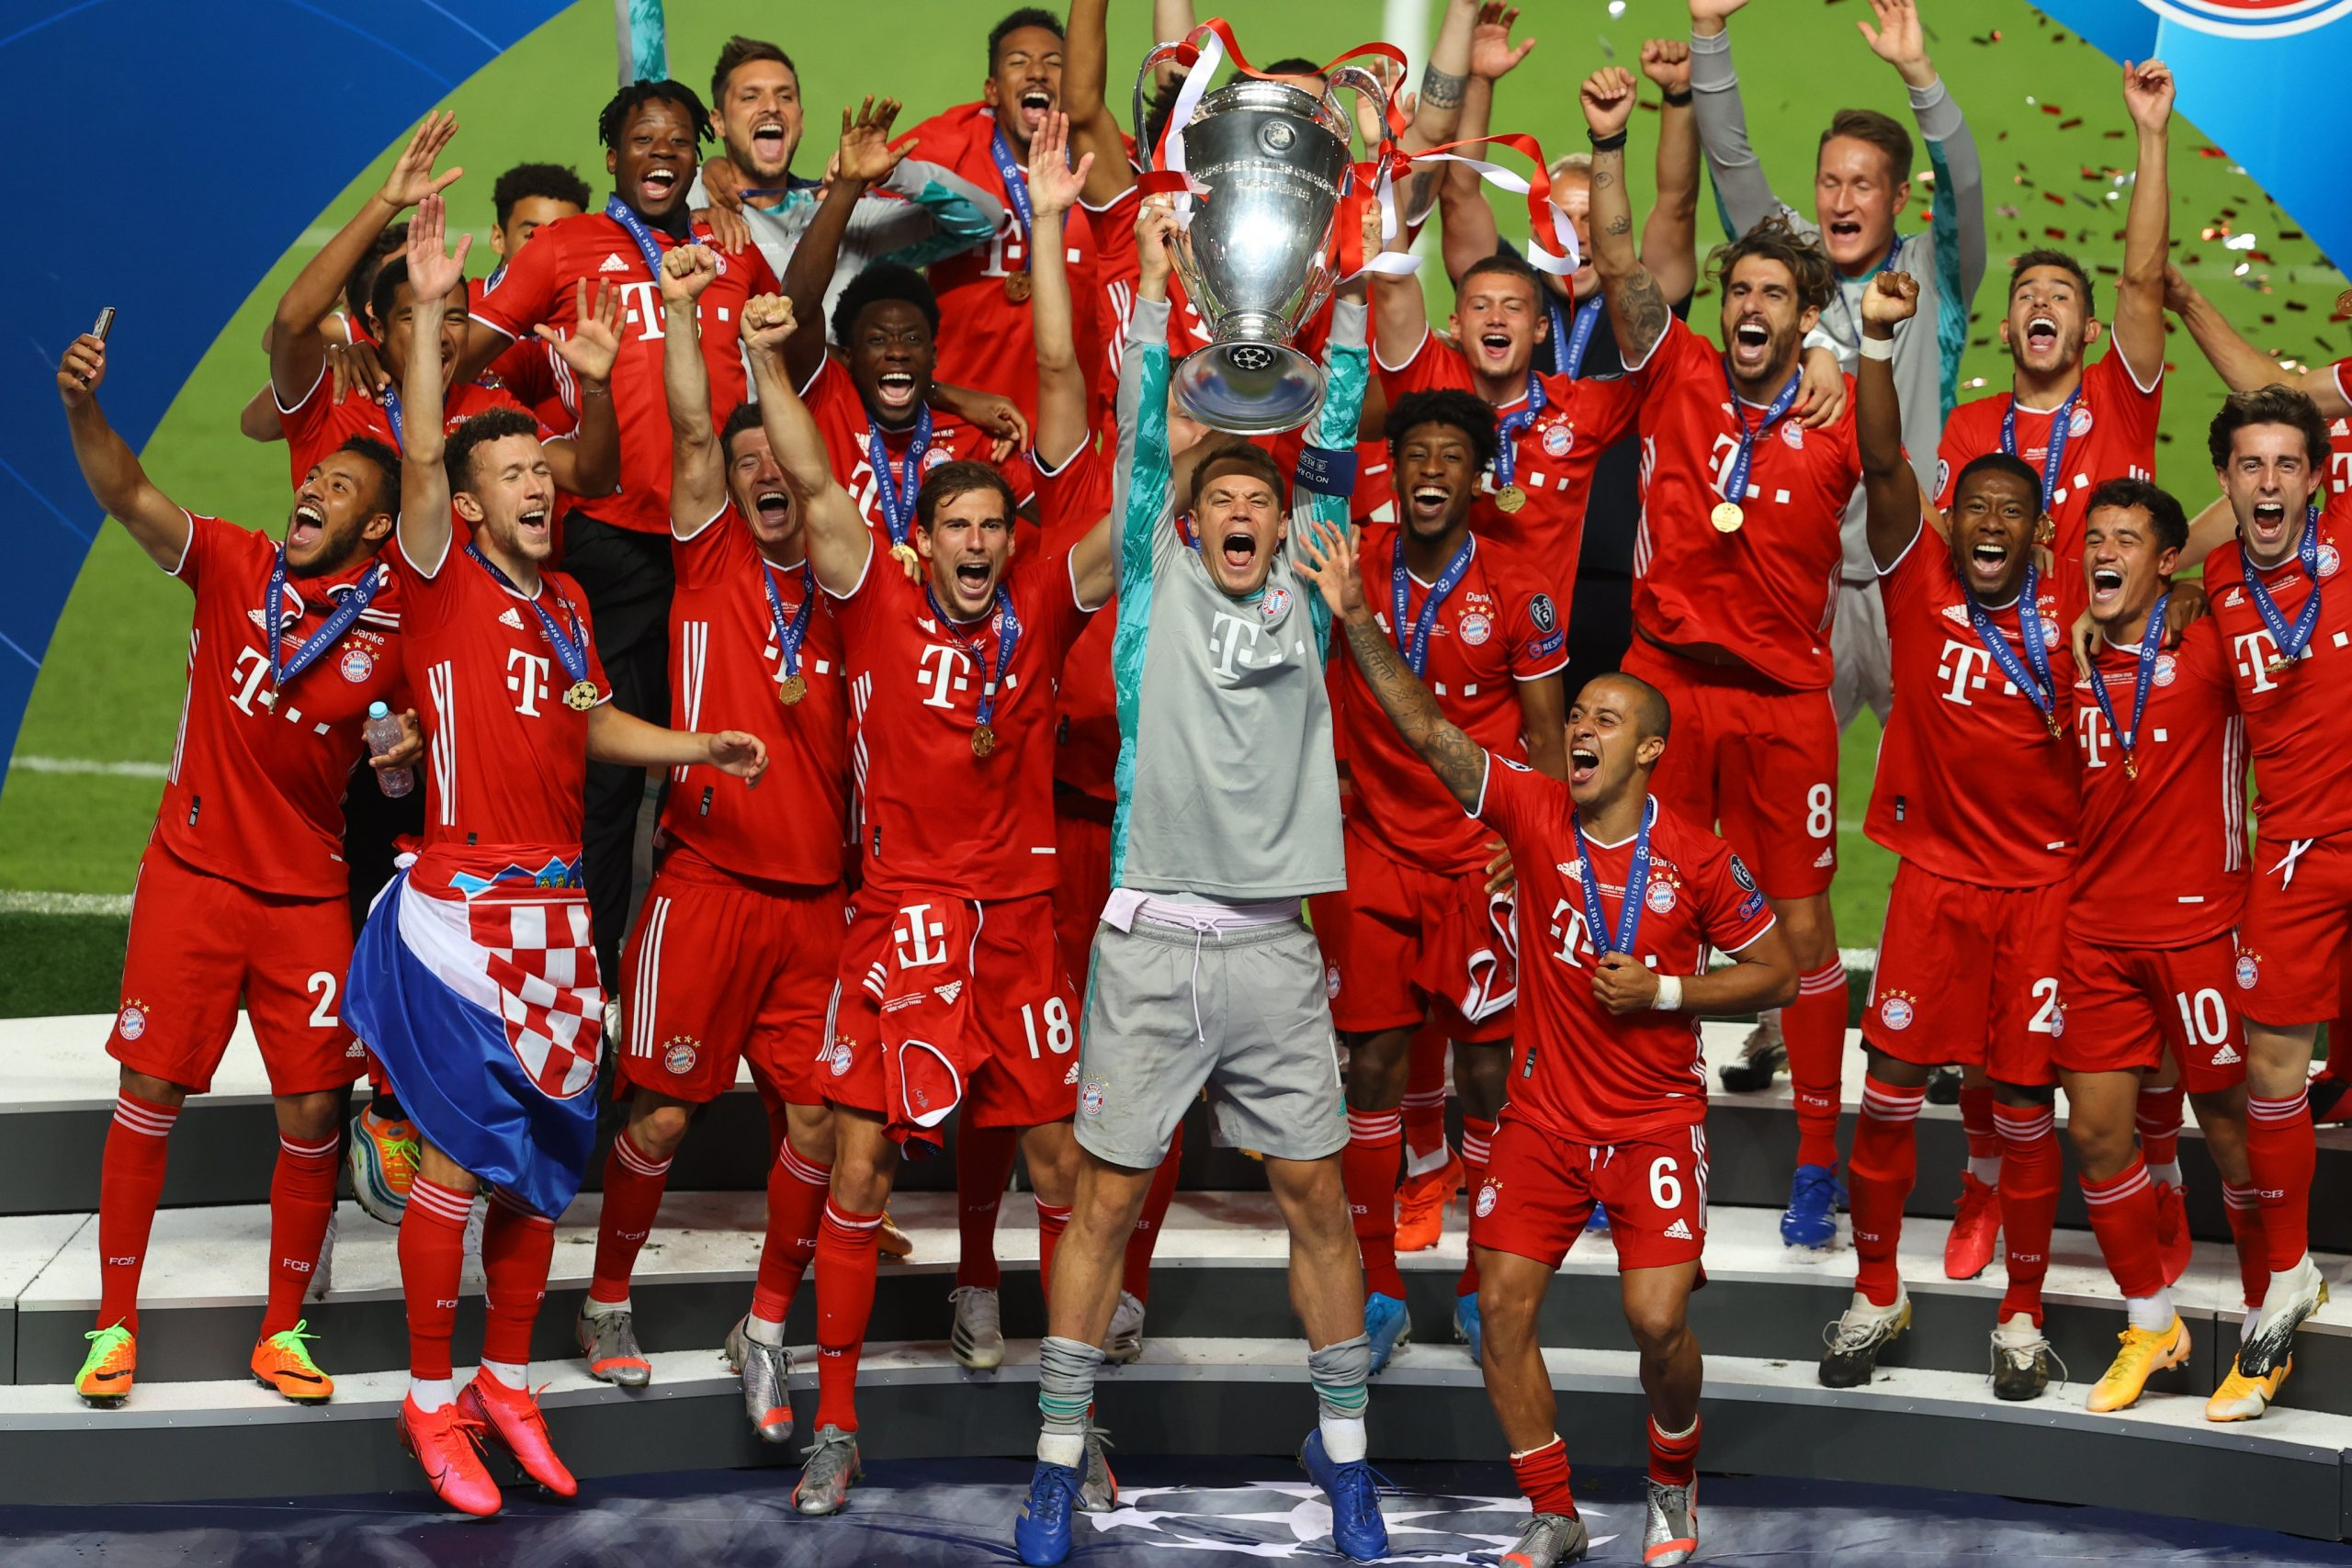 Bayern Munich Beat PSG To Win 2019/20 UEFA Champions League